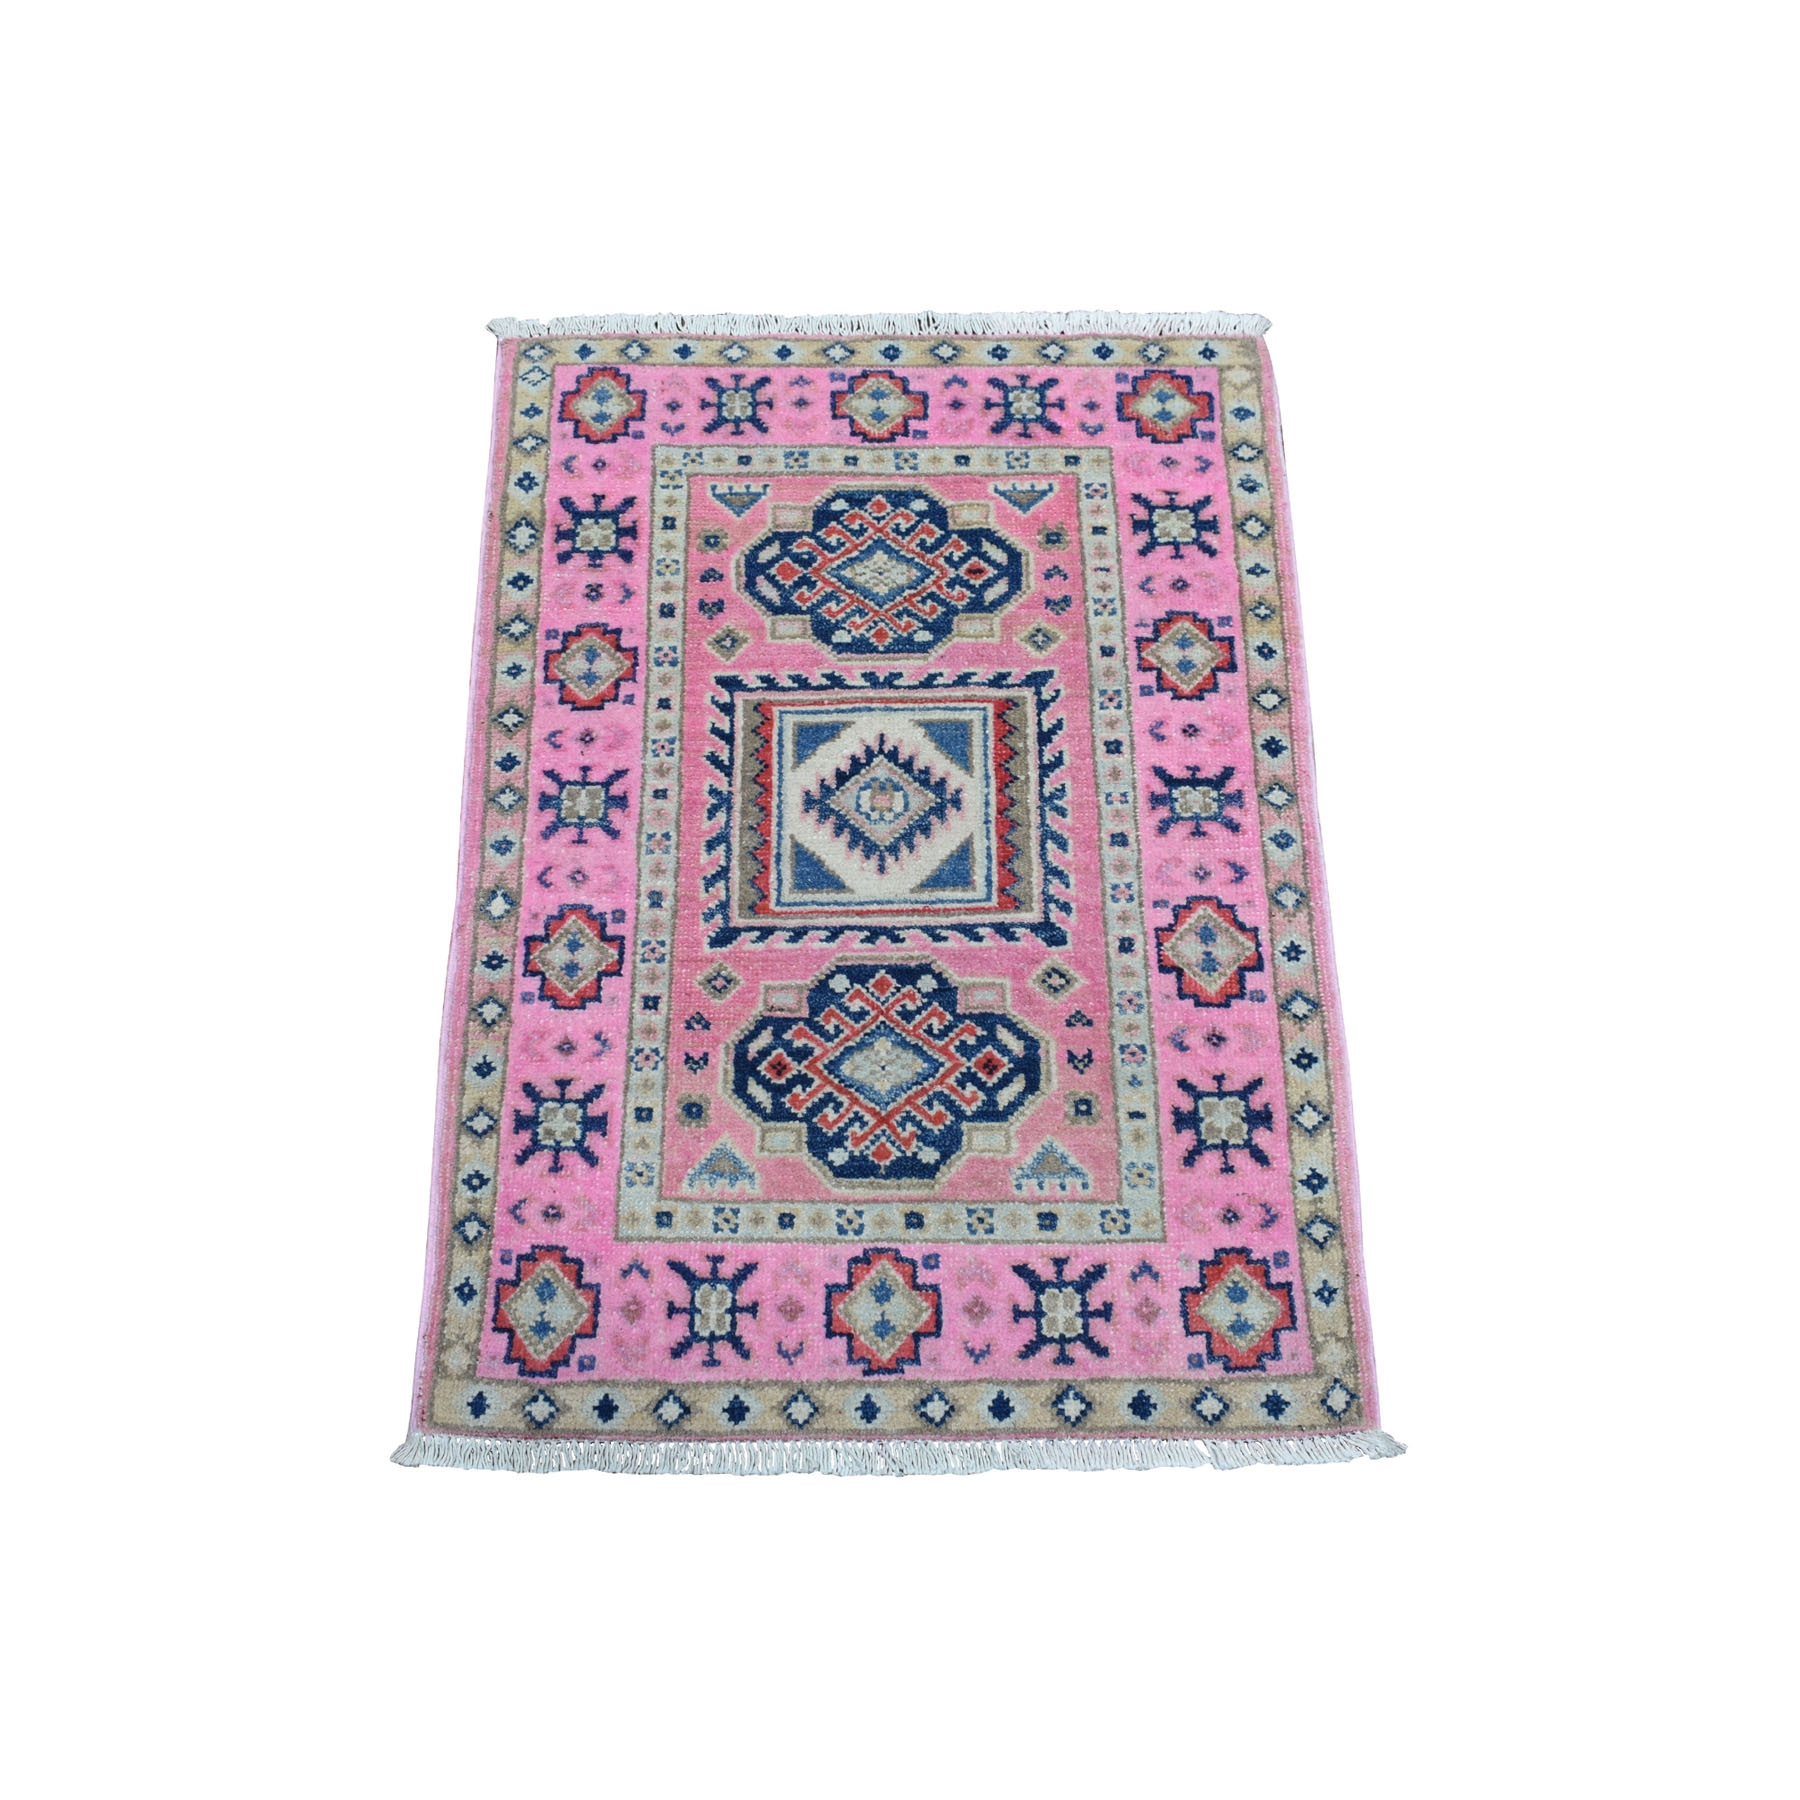 "2'1""x2'10"" Colorful Pink Fusion Kazak Pure Wool Geometric Design Hand Woven Oriental Rug"